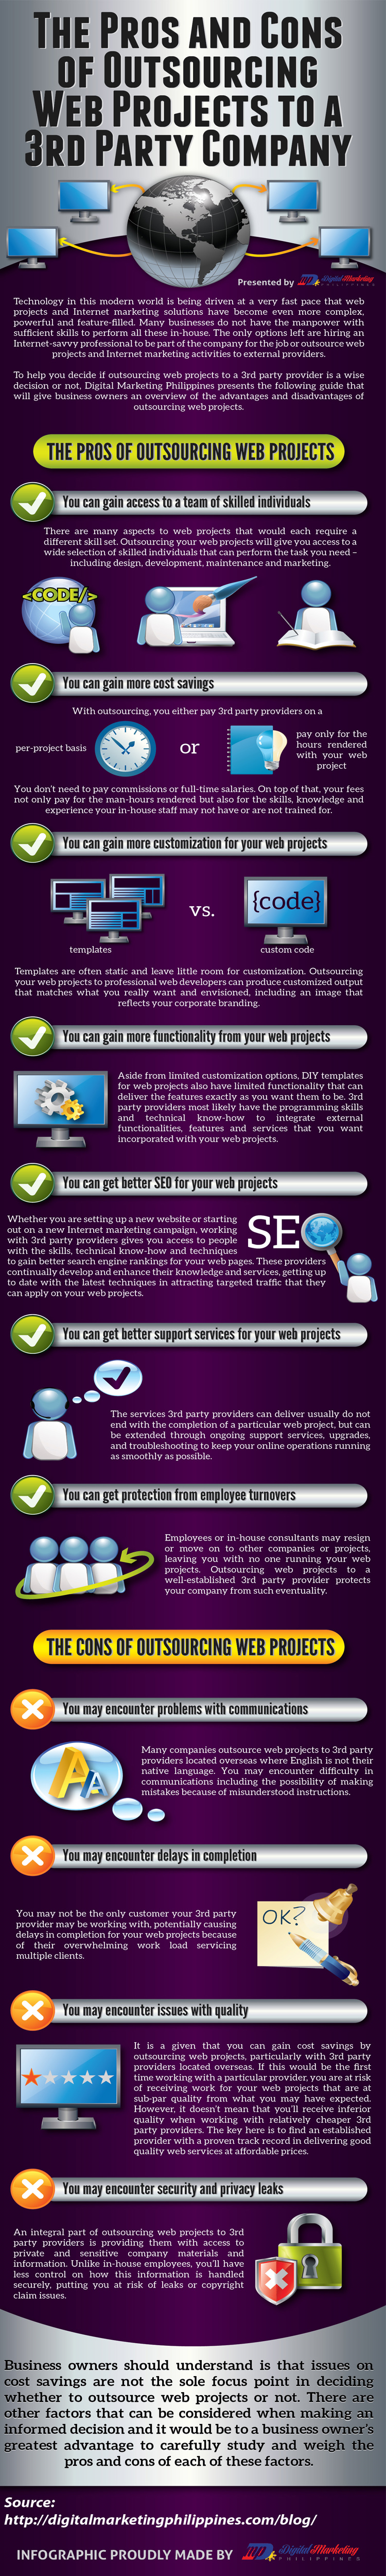 The Pros and Cons of Outsourcing Web Projects to a 3rd Party Company